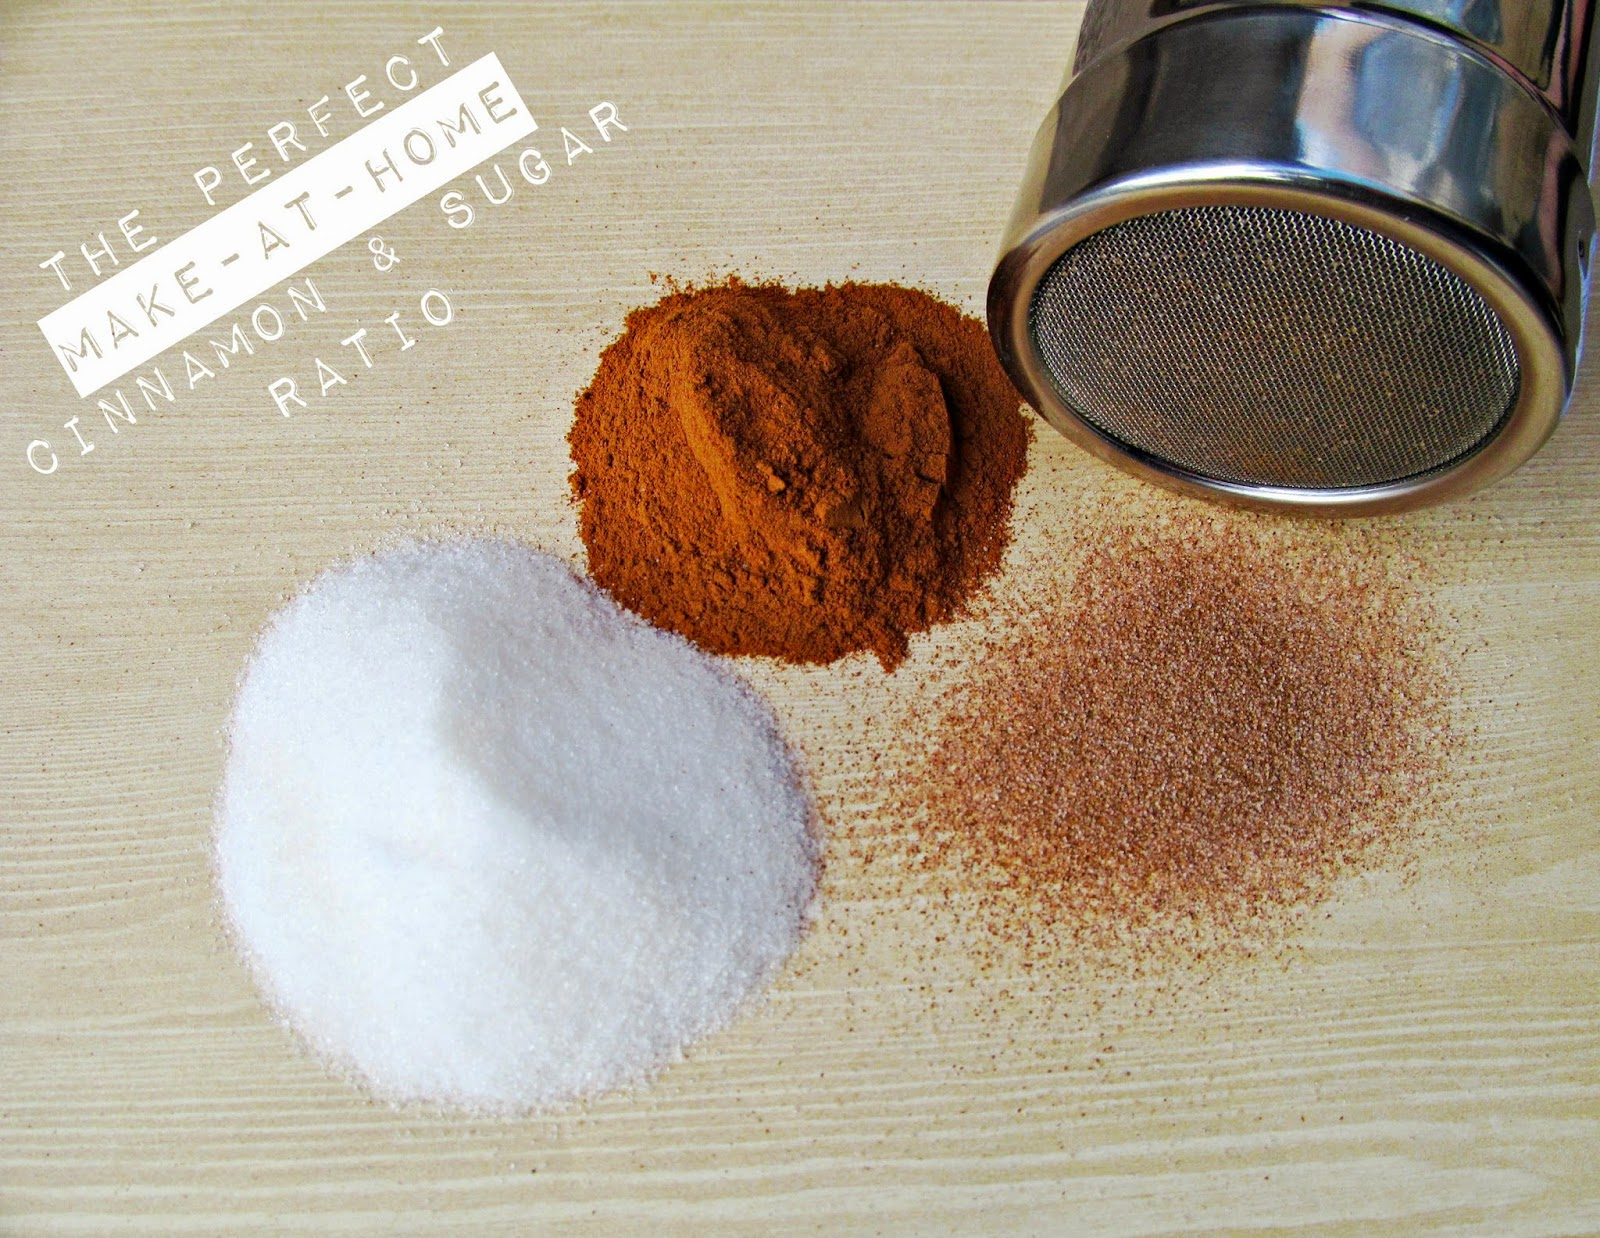 Make your own Cinnamon & Sugar! Learn how here!